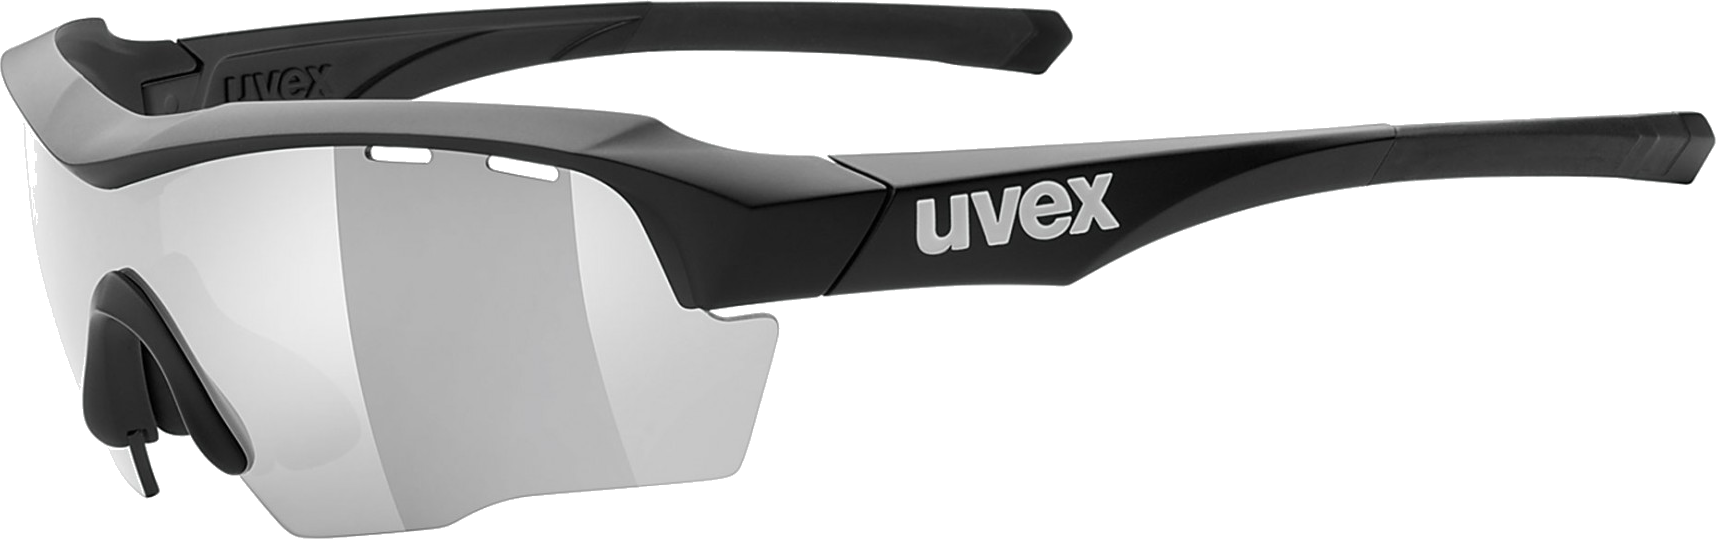 UVEX sport sunglasses PNG image